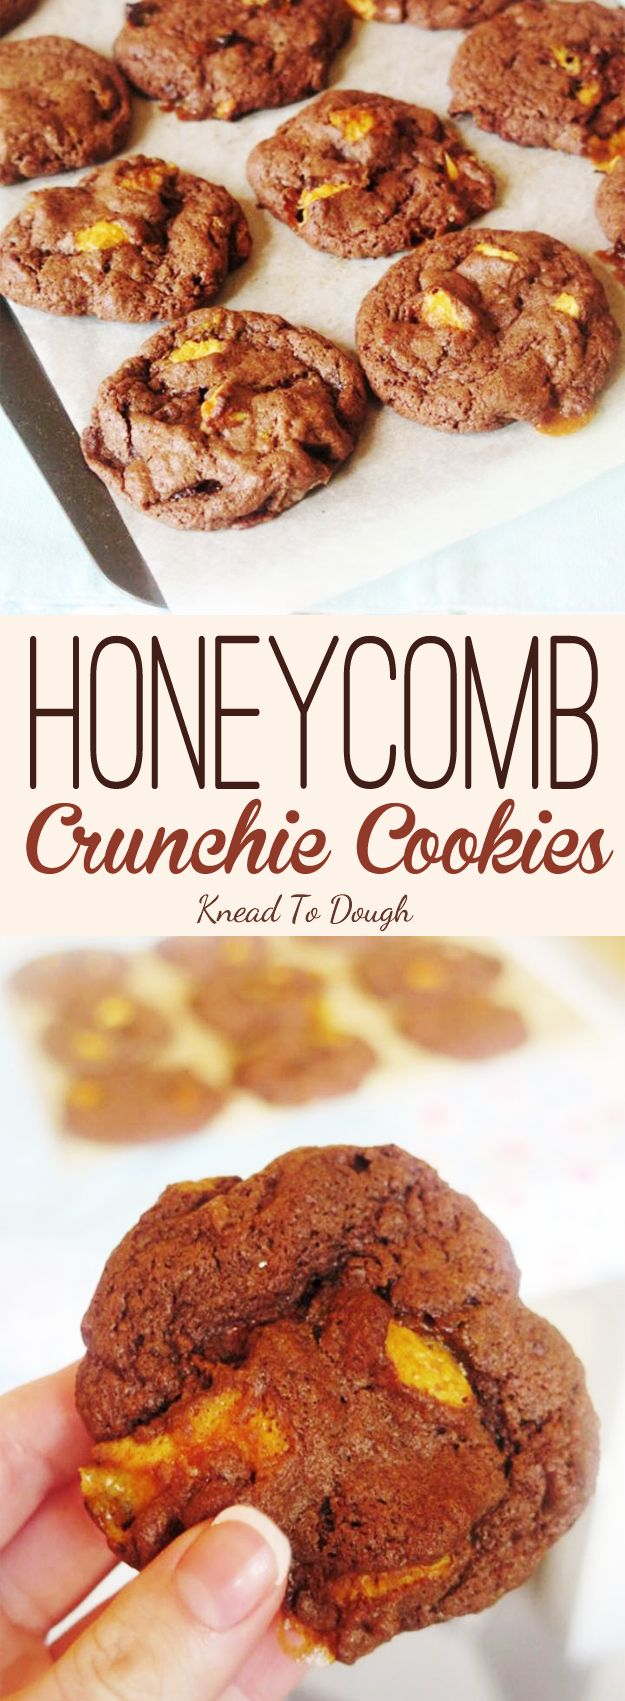 THE BEST Honeycomb Crunchie Cookies - delicious bakery style chocolate cookies packed with honeycomb crunchie bar pieces. You will love this easy and quick recipe - click through for the recipe now! Knead to Dough